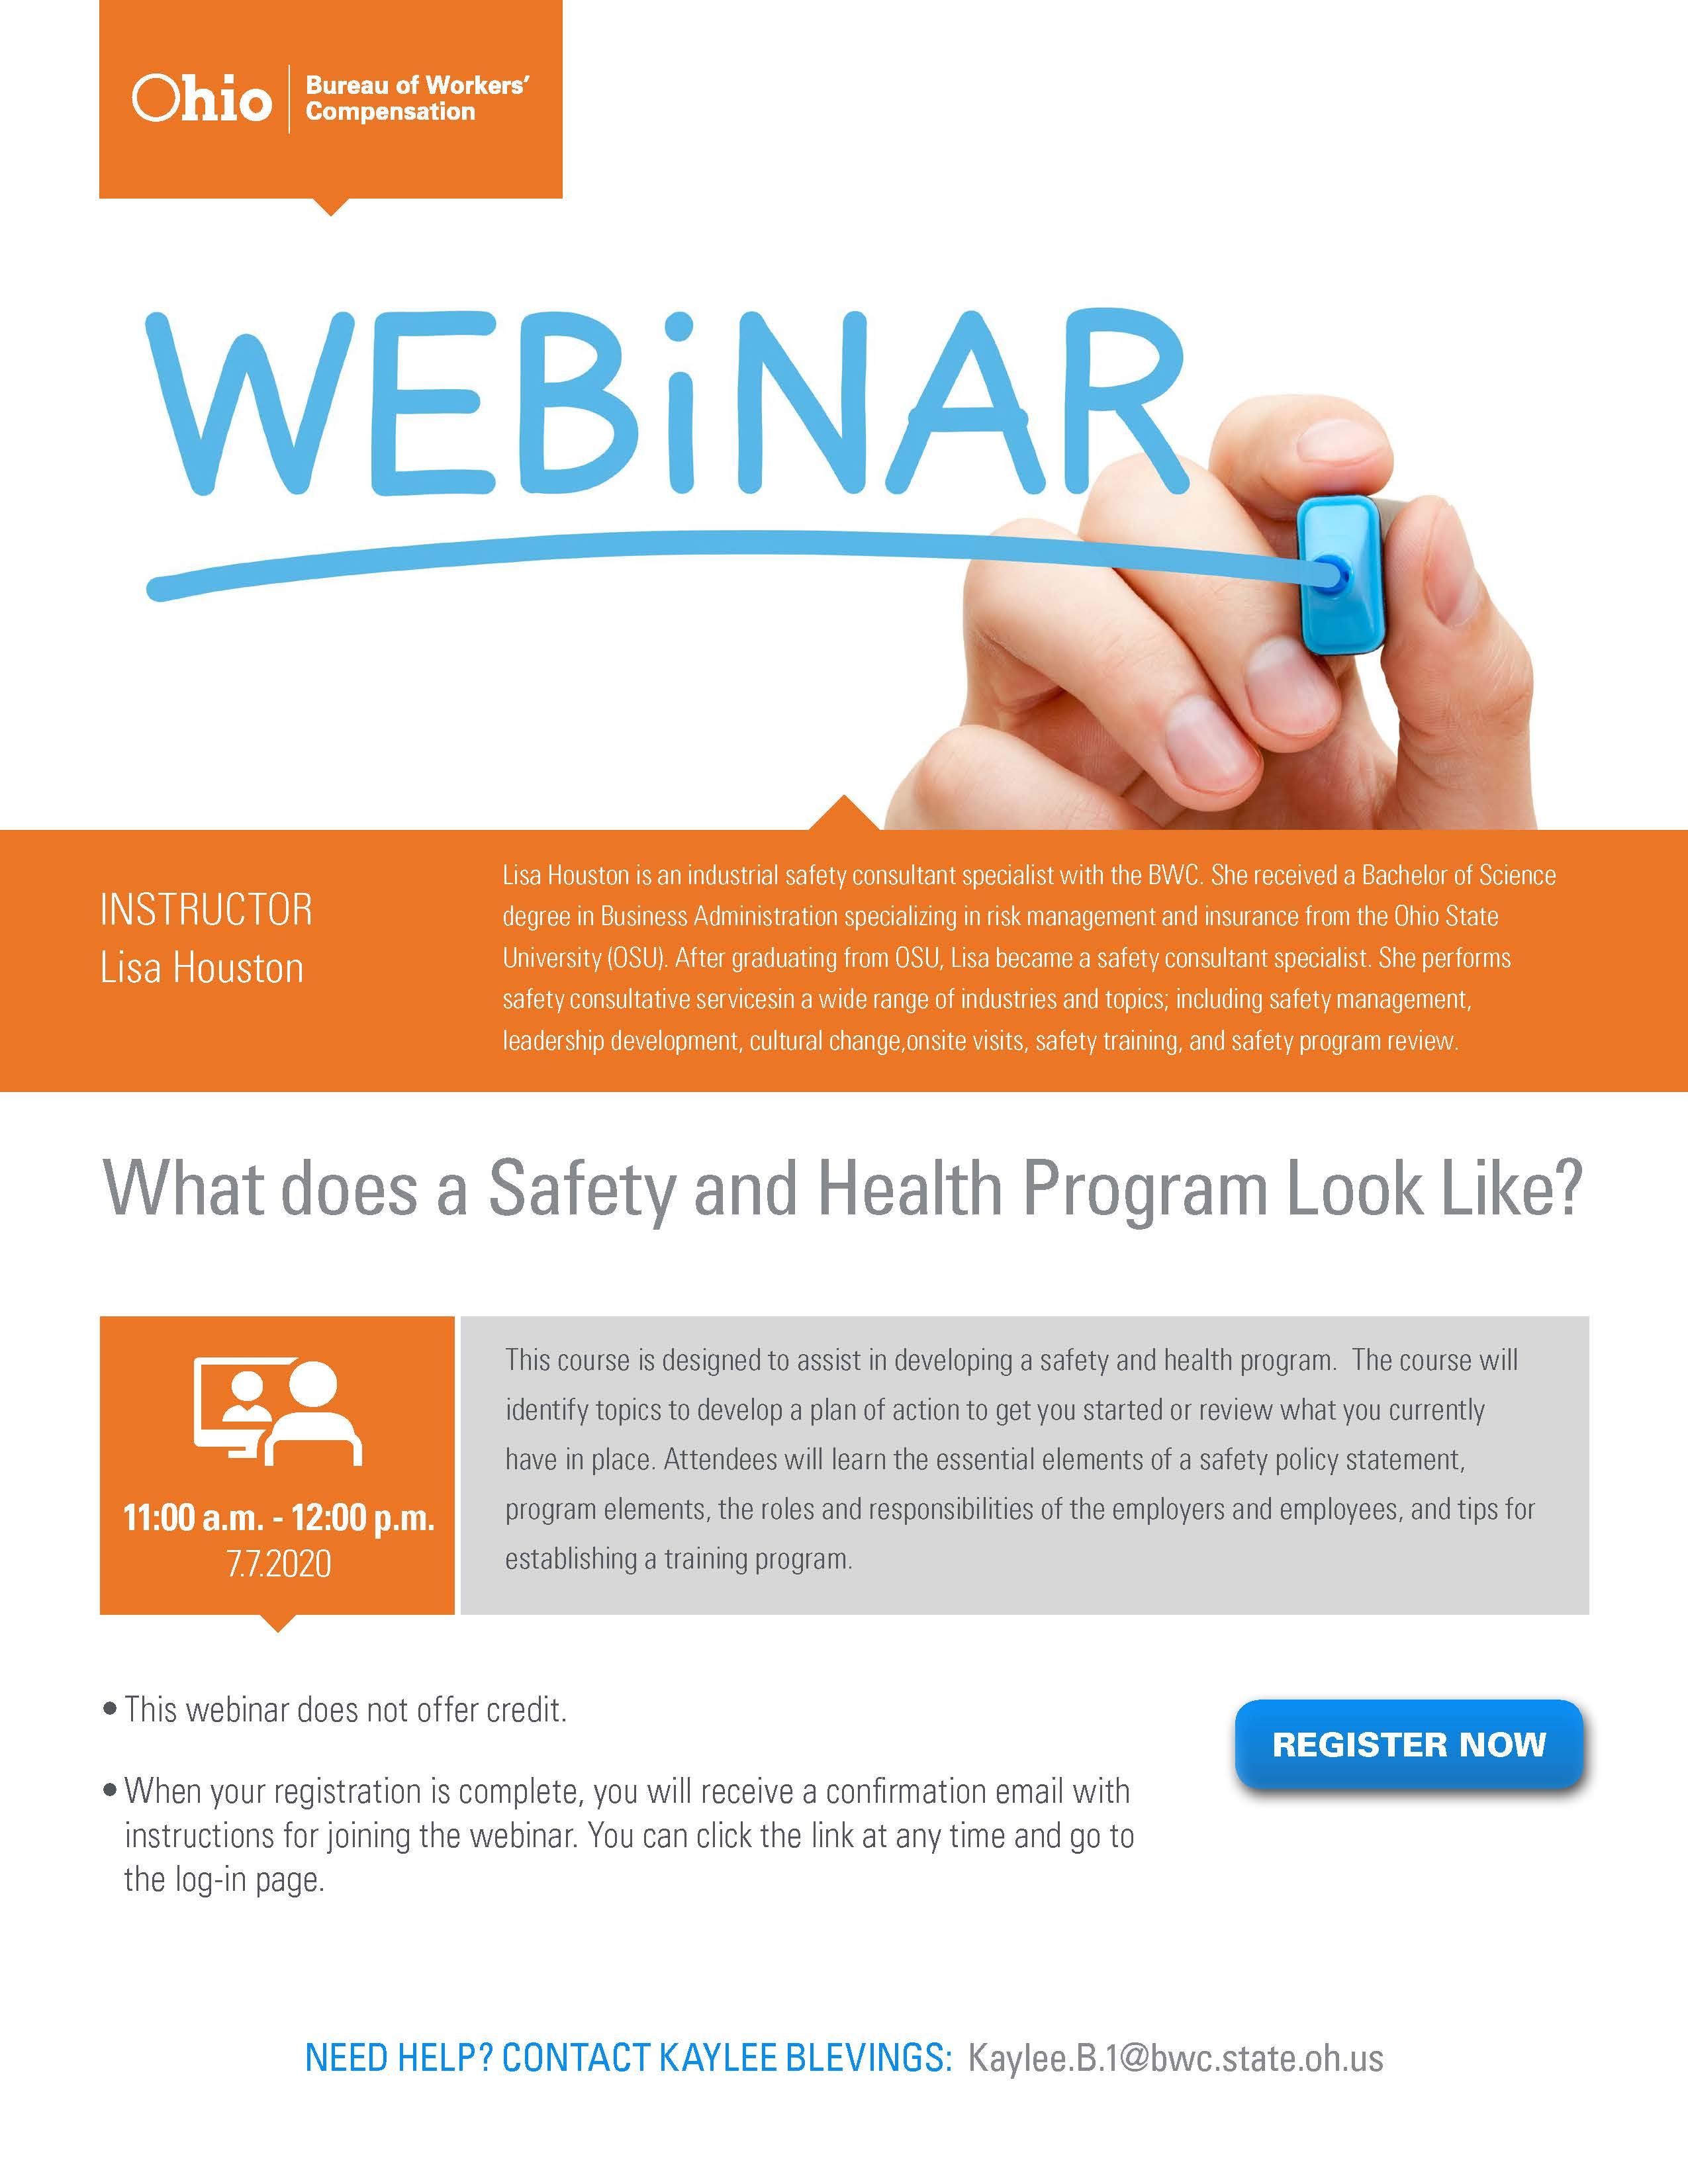 What does a Safety and Health Program Look Like Flyer